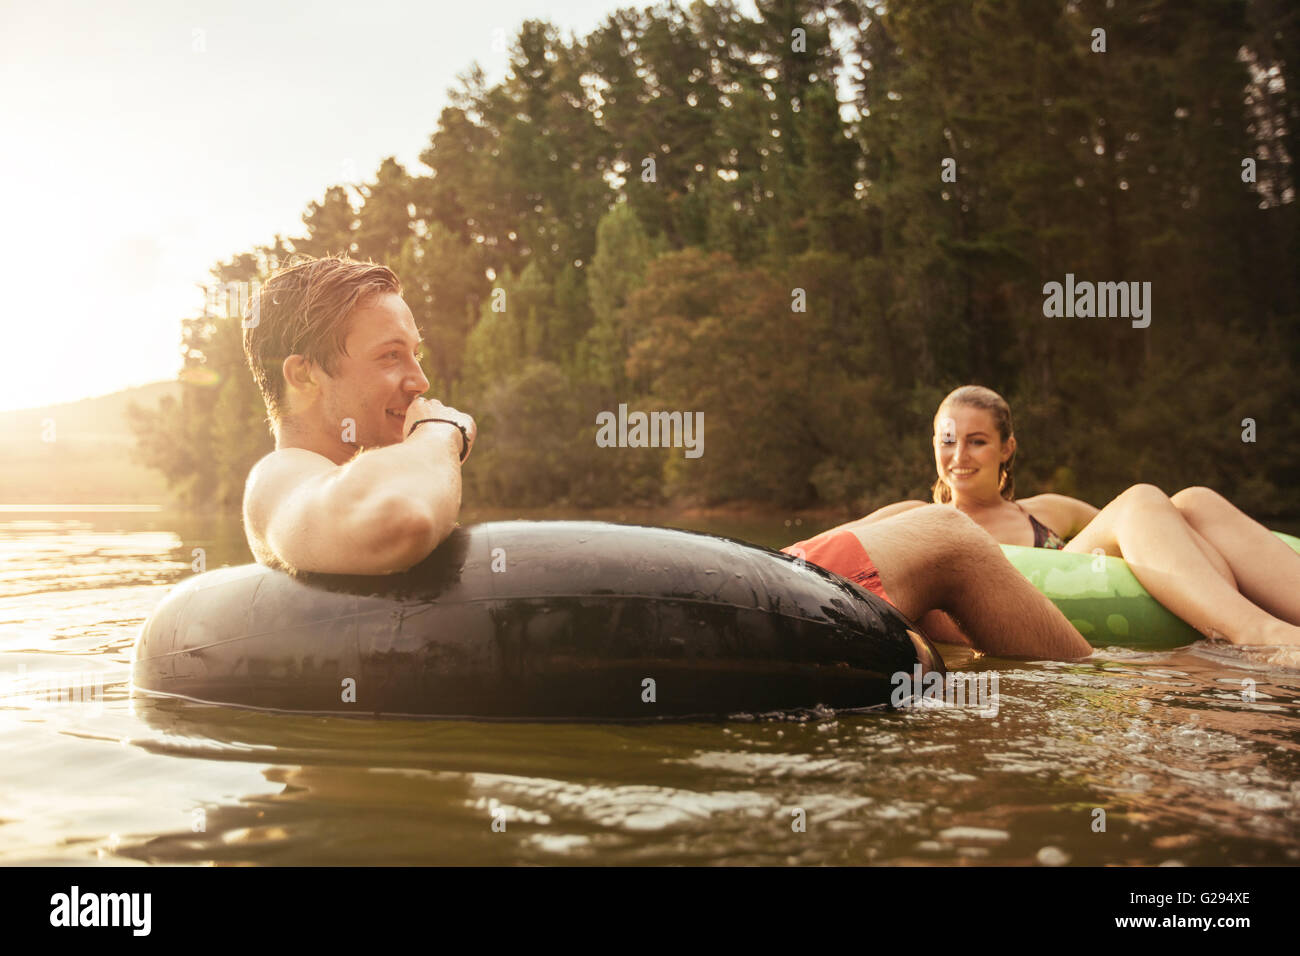 Portrait of happy young man in lake on inflatable ring with his girlfriend. Young couple relaxing in water on a - Stock Image